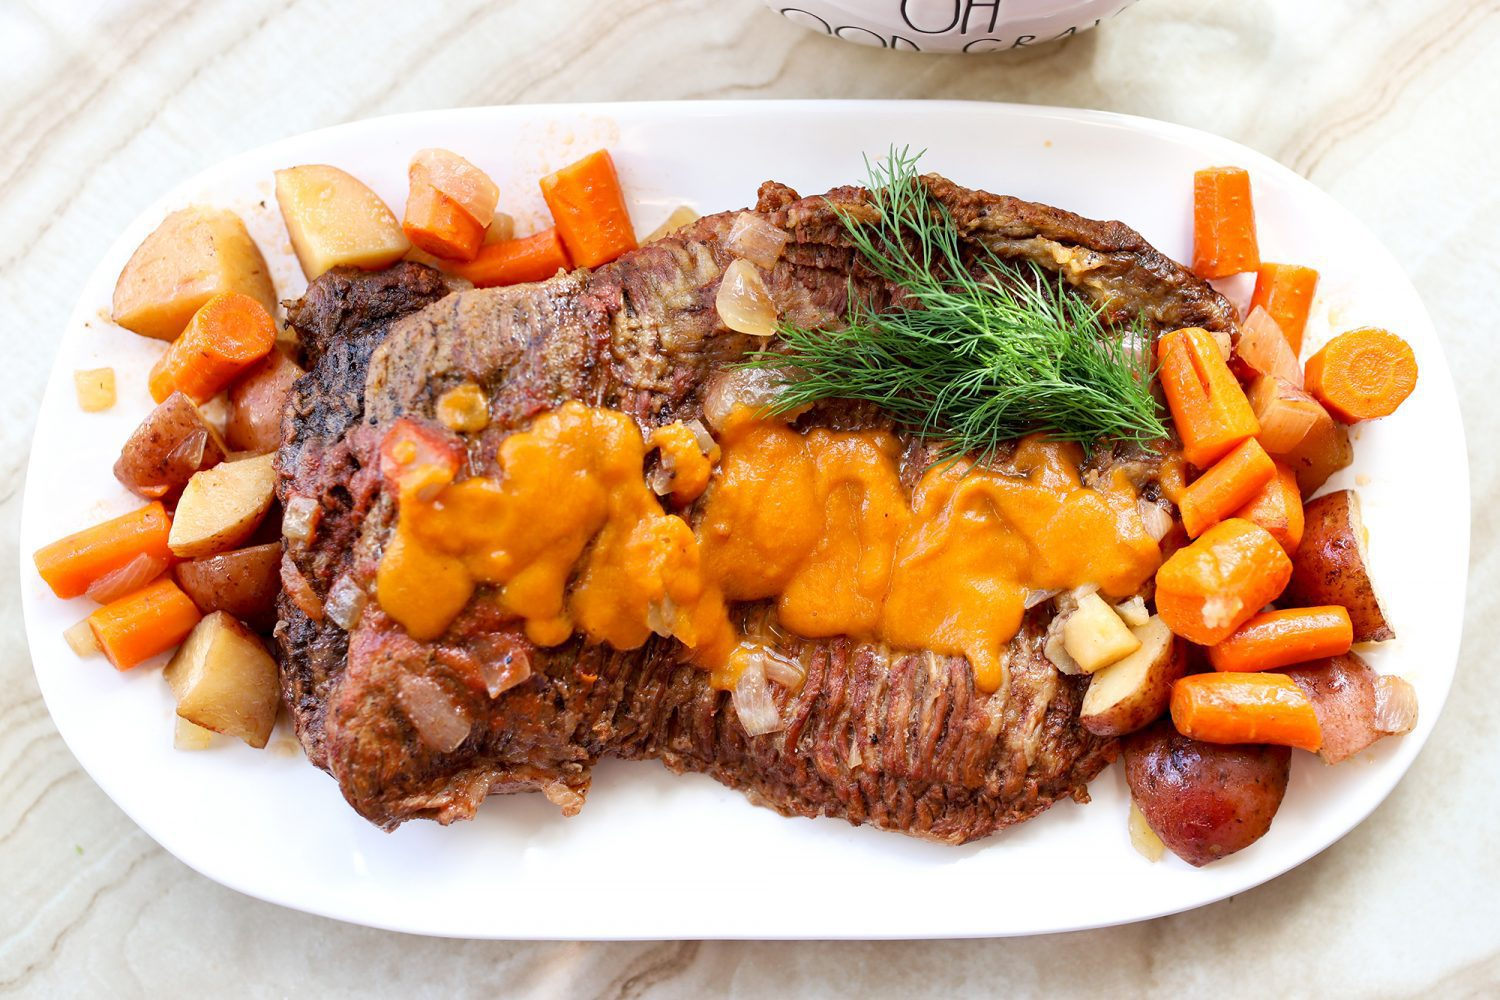 beef brisket potatoes and carrots